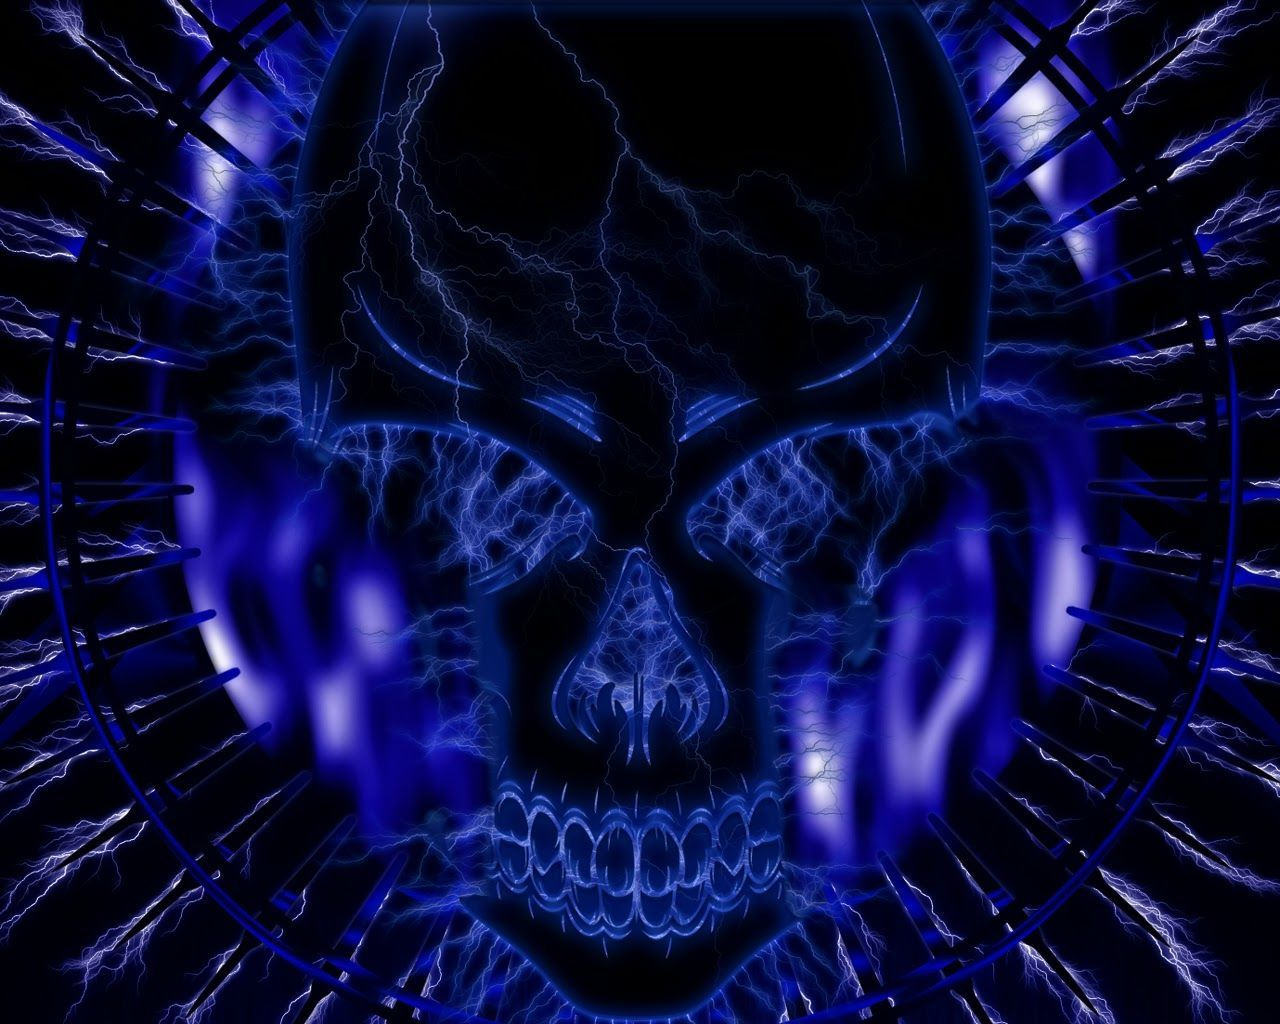 Skull Wallpaper Hd Collection For Free Download Обои с